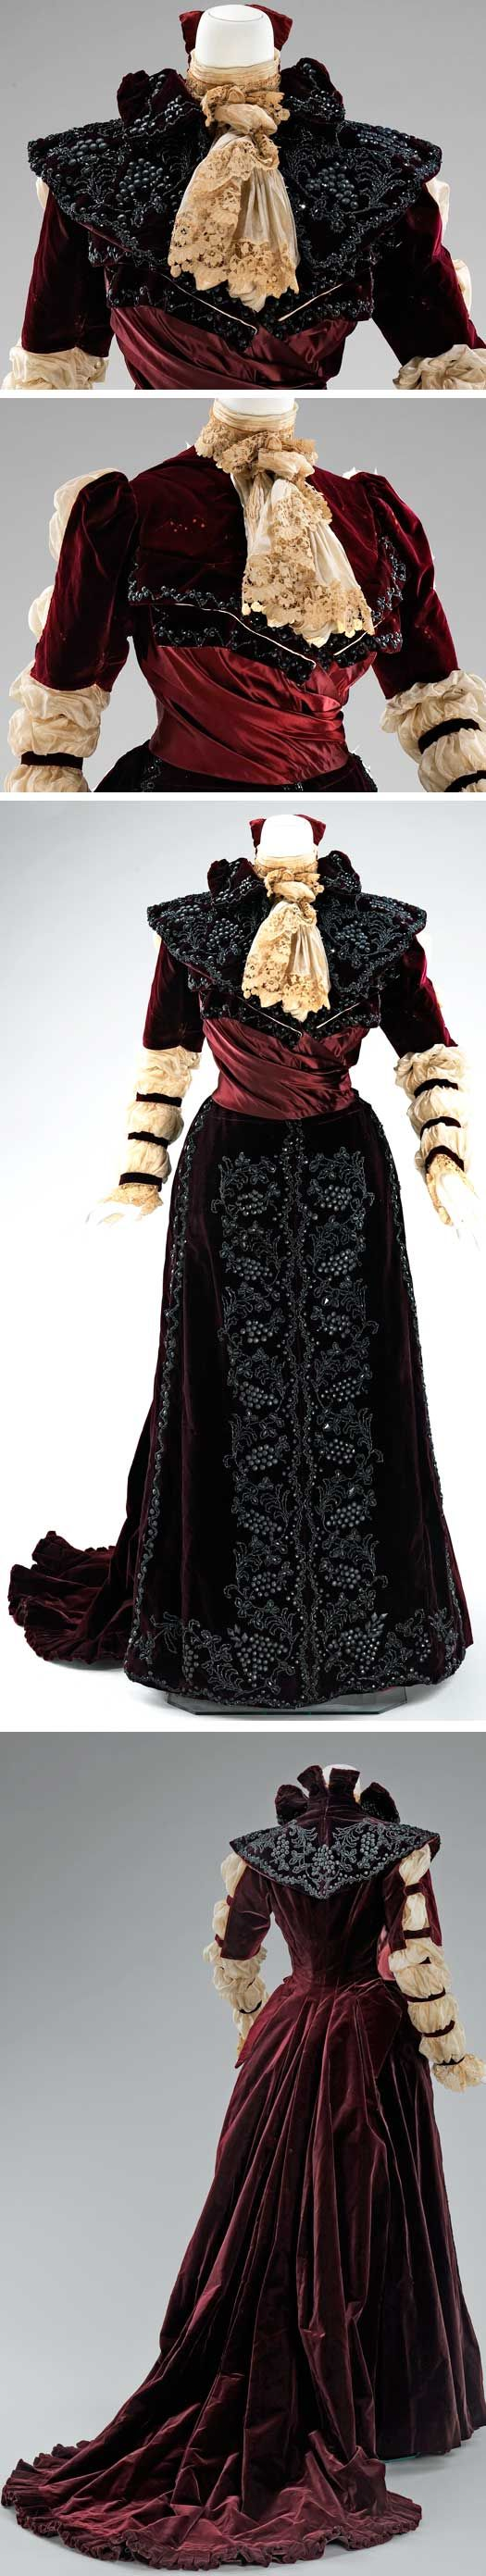 """Dress, American, 1890. Silk and linen.  Metropolitan Museum of Art: """"This dress is in keeping with the interest in historical revivals popular in the 19th century. The long puffed sleeves refer to both Elizabethan and early 19th-century styles. The one-piece construction indicates it was probably intended for formal reception at home."""""""